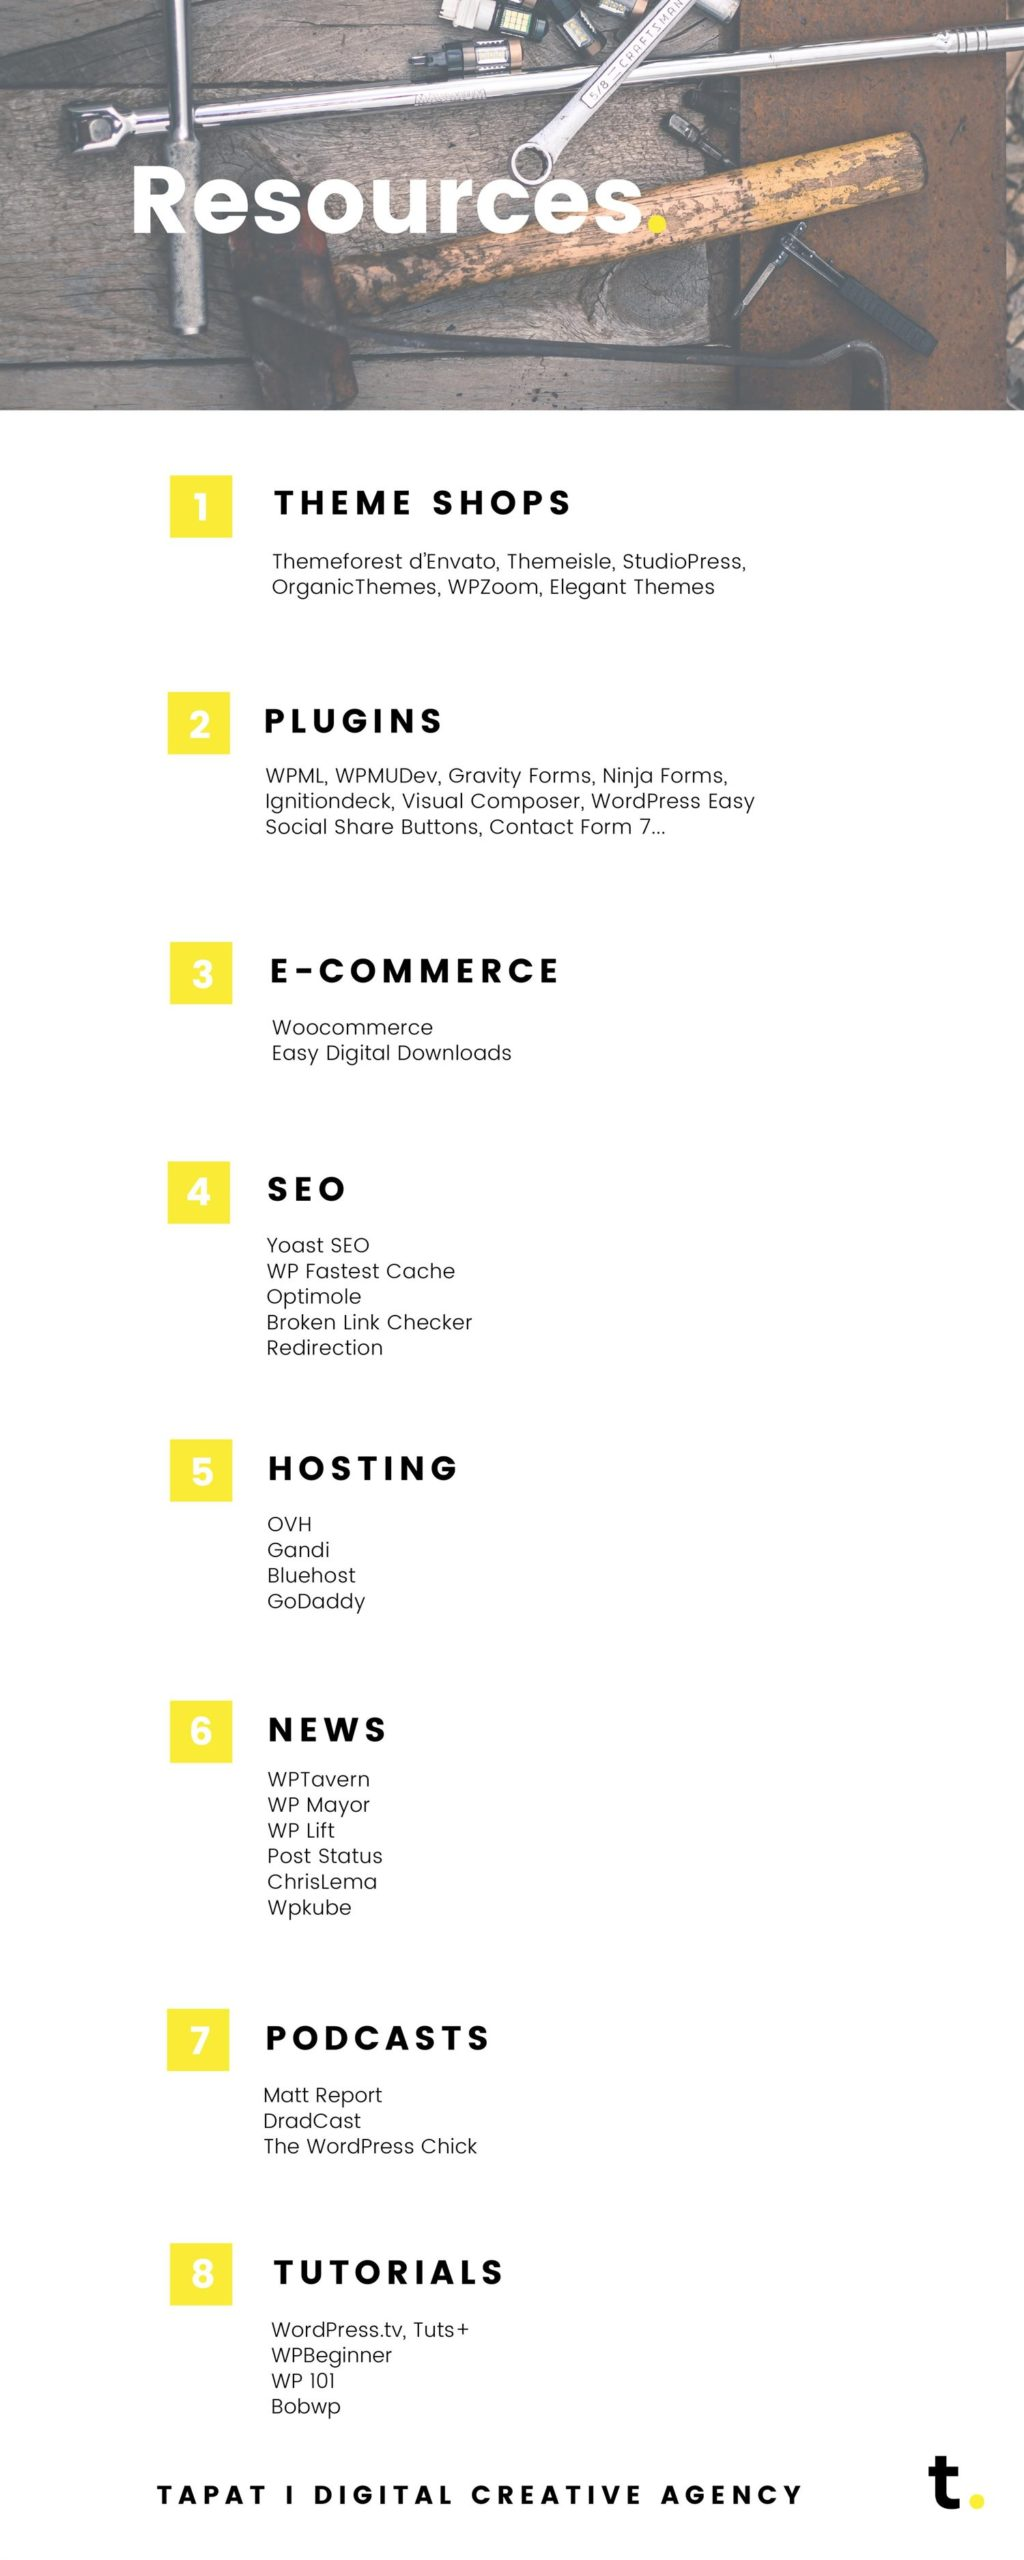 Wordpress infographic 04 resources - tapat creative agency